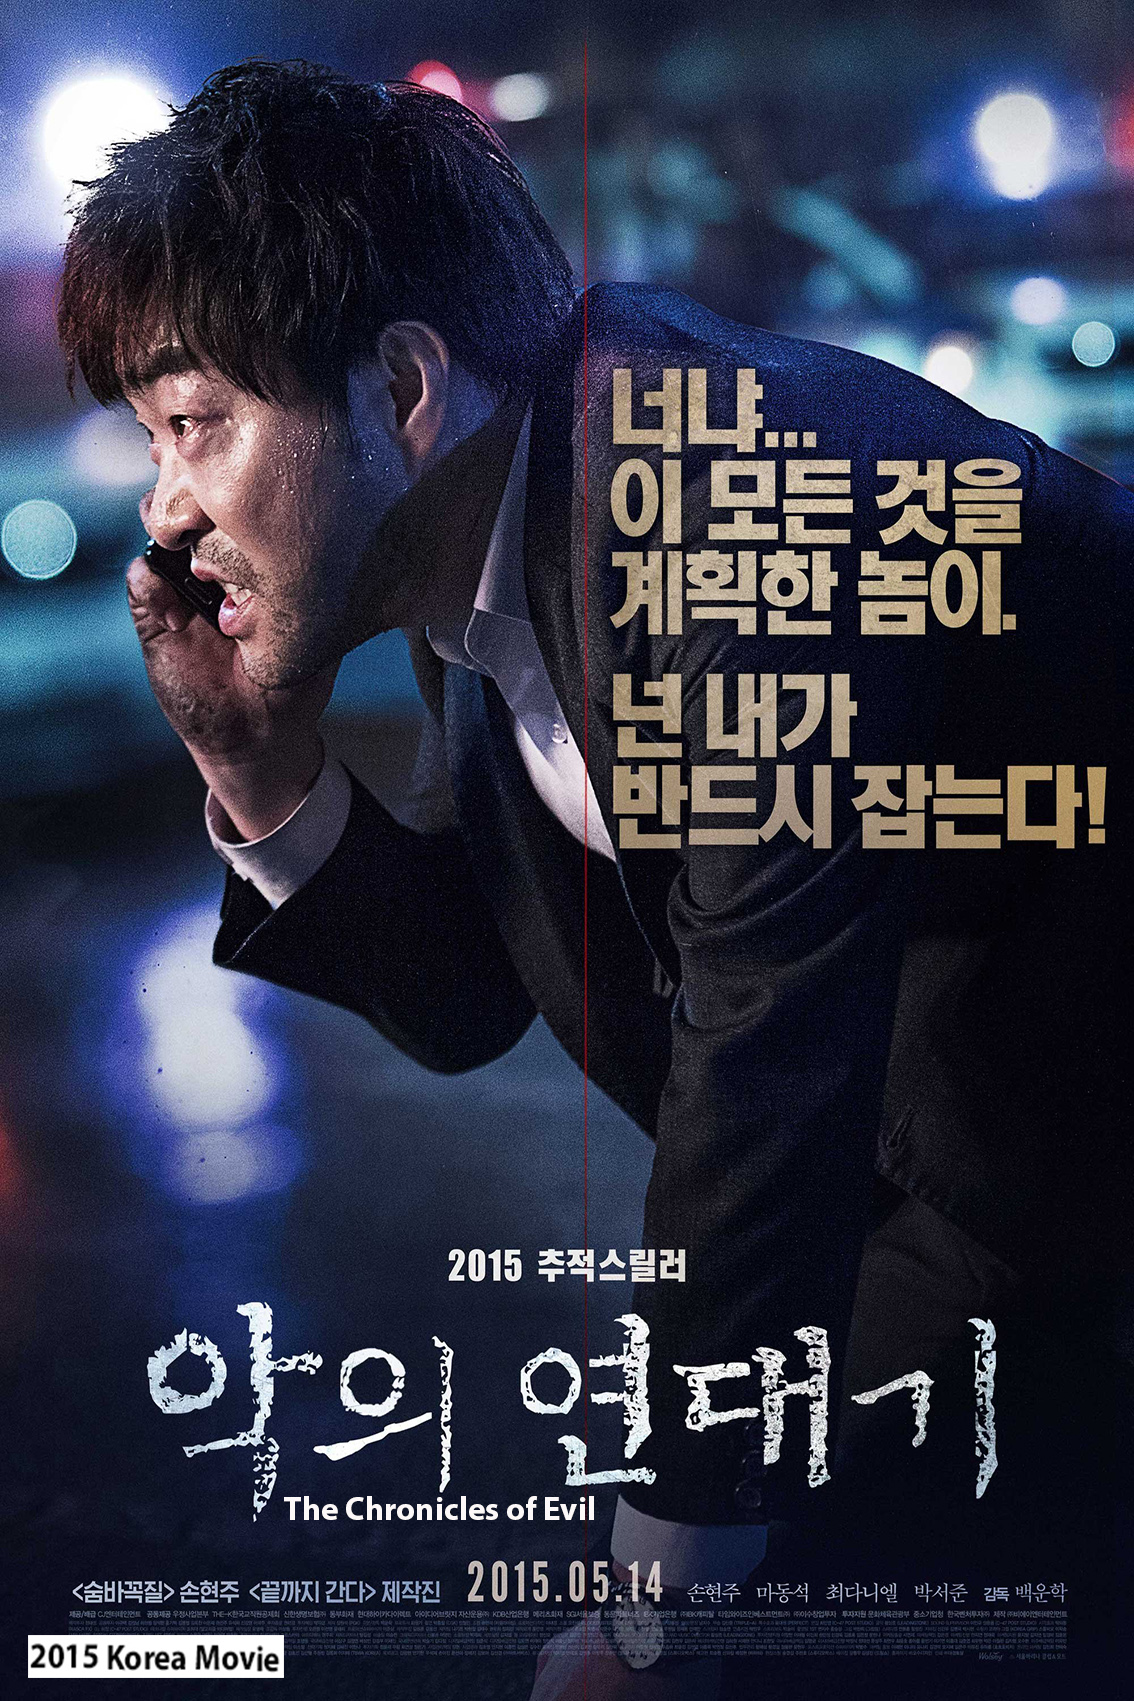 The Chronicles of Evil [2015 Korea Movie]